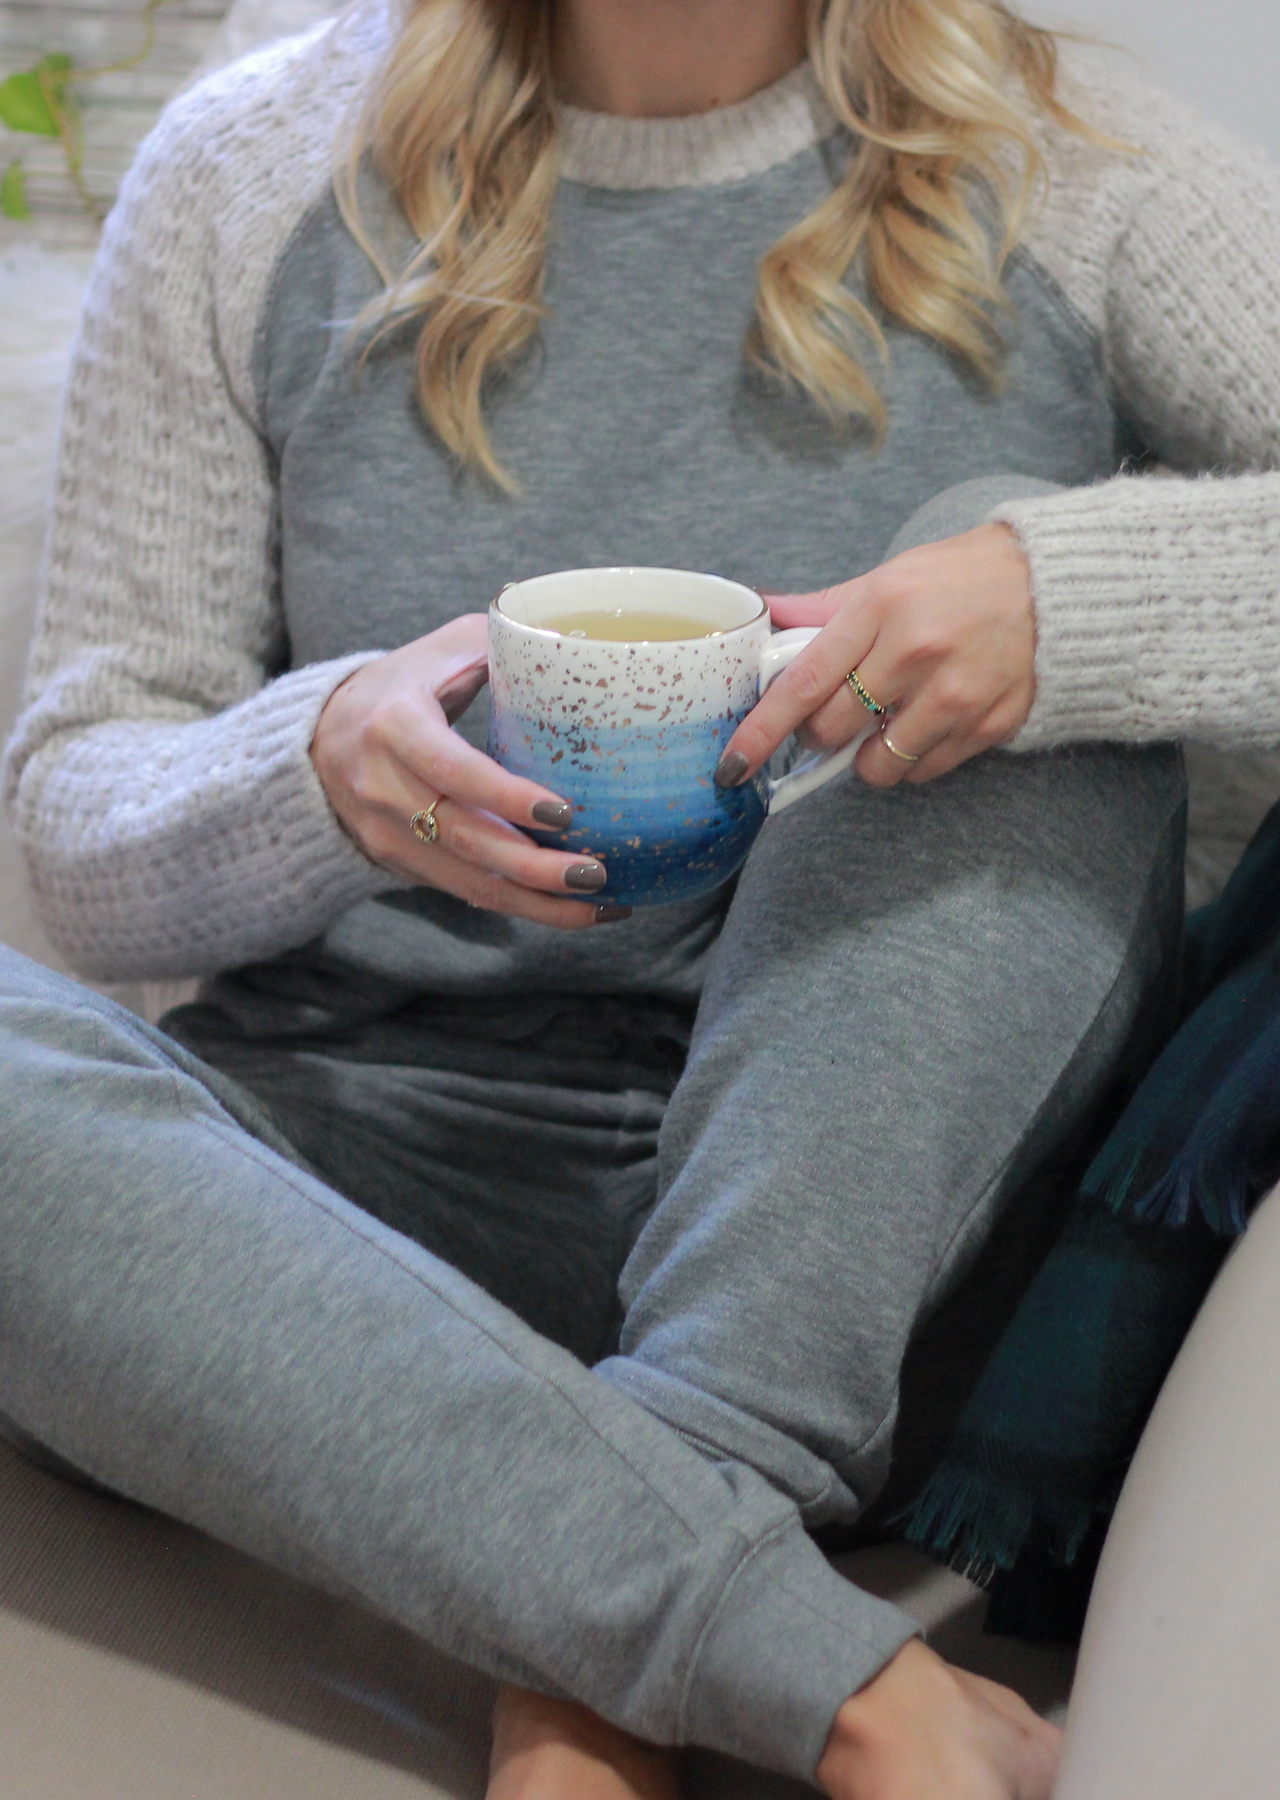 The Steele Maiden - Cozy Holiday Style - Lands' End sweats and Anthropologie Mug